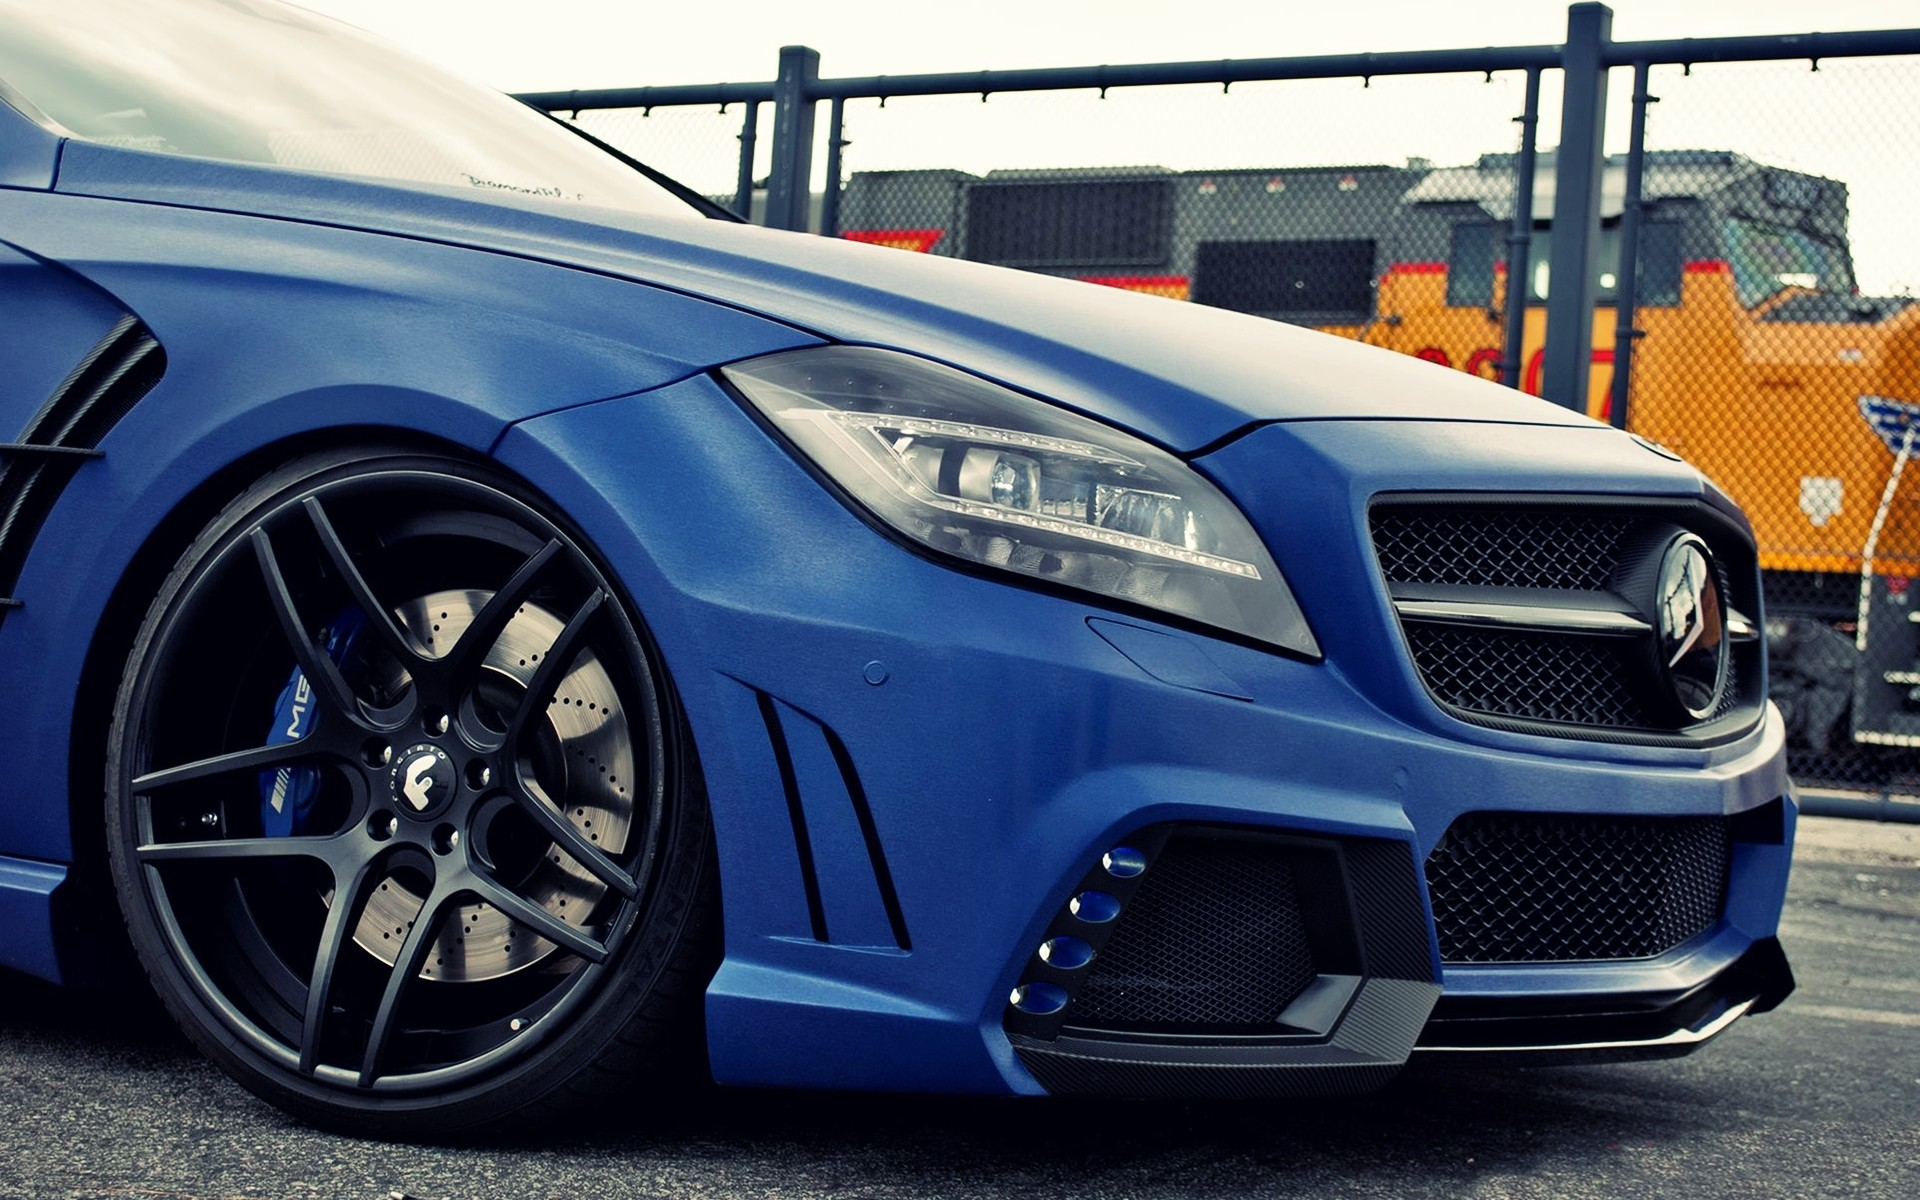 Blue Mercedes Benz Cls 63 Amg Section Wallpapers Blue